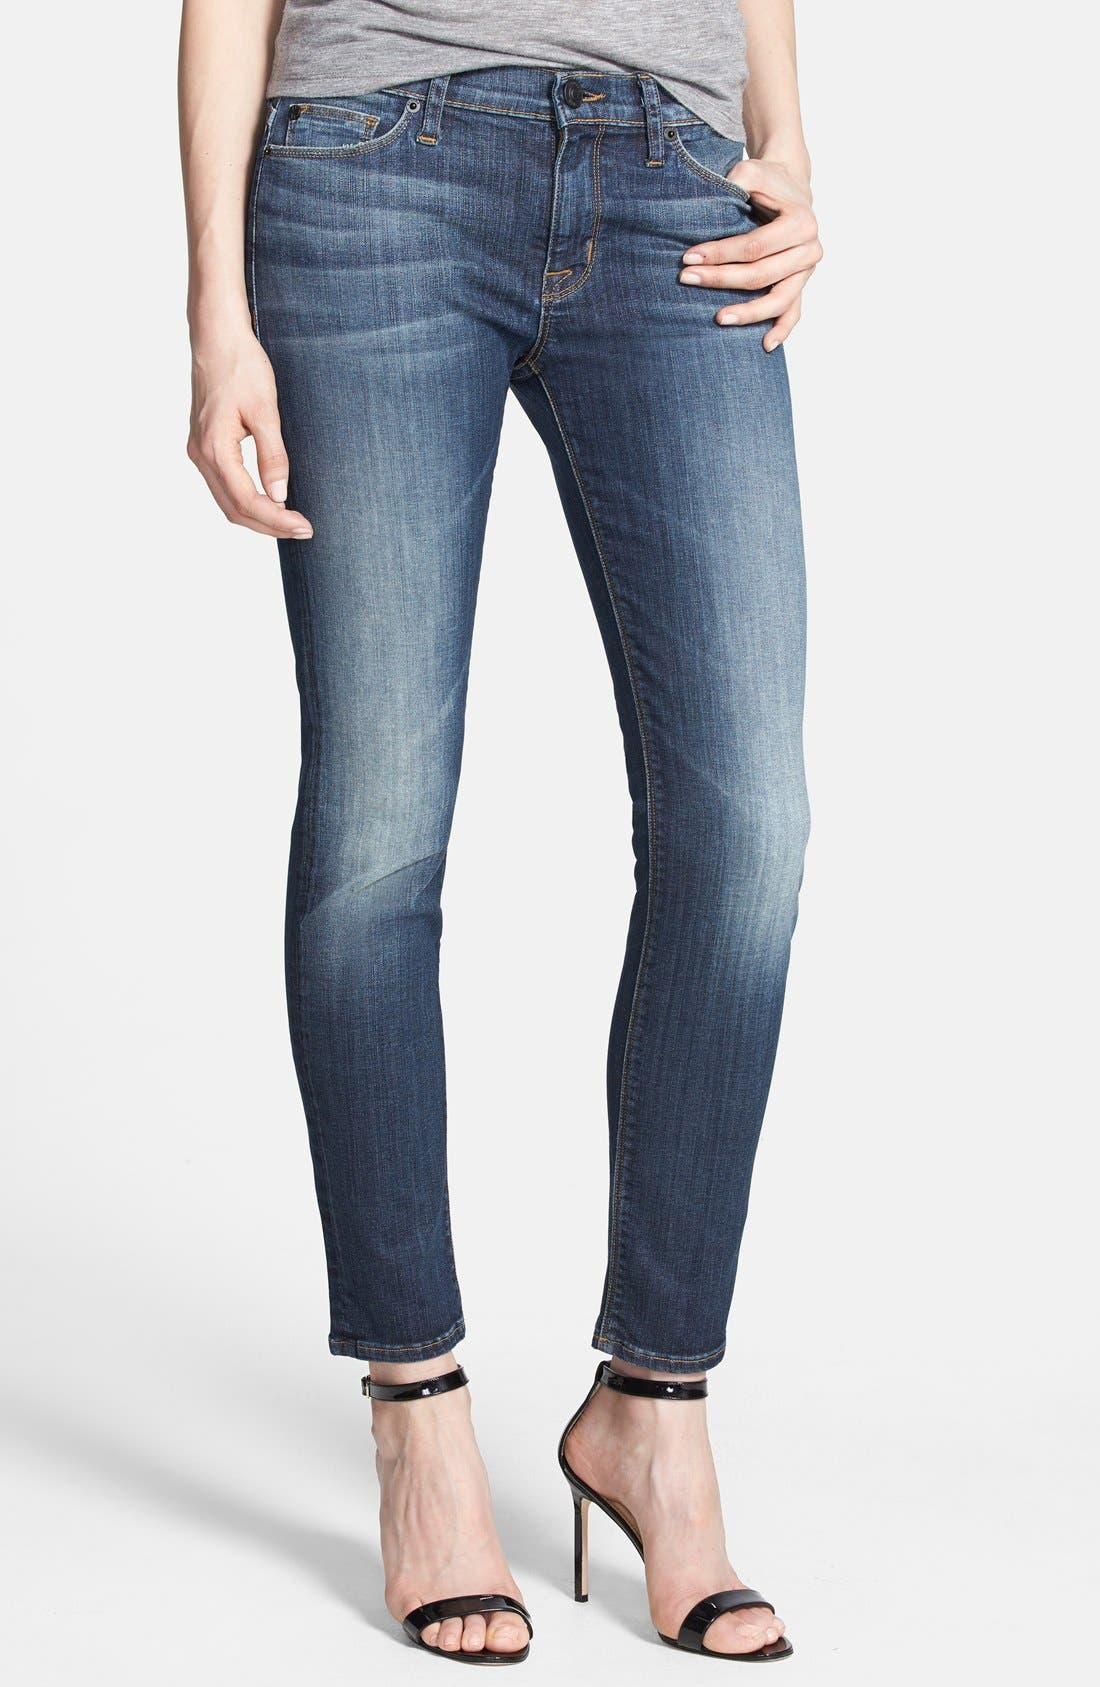 Alternate Image 1 Selected - Hudson Jeans 'Collette' Skinny Ankle Jeans (Glam)